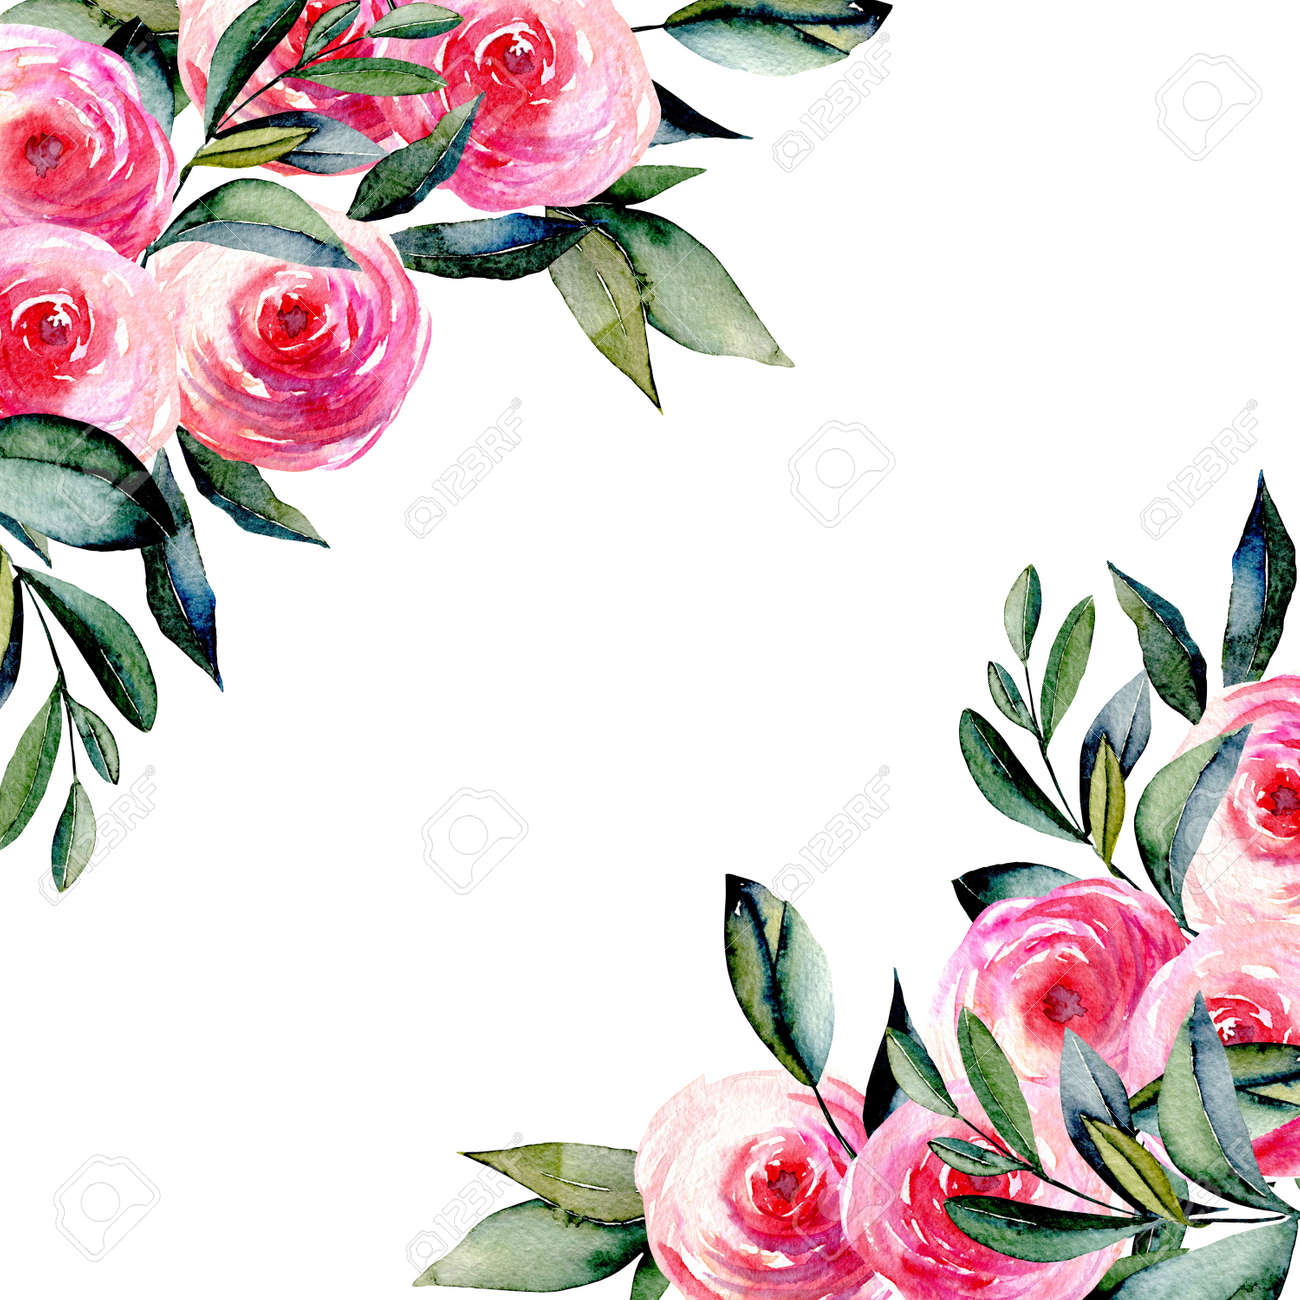 card template with watercolor red roses and green leaves in the